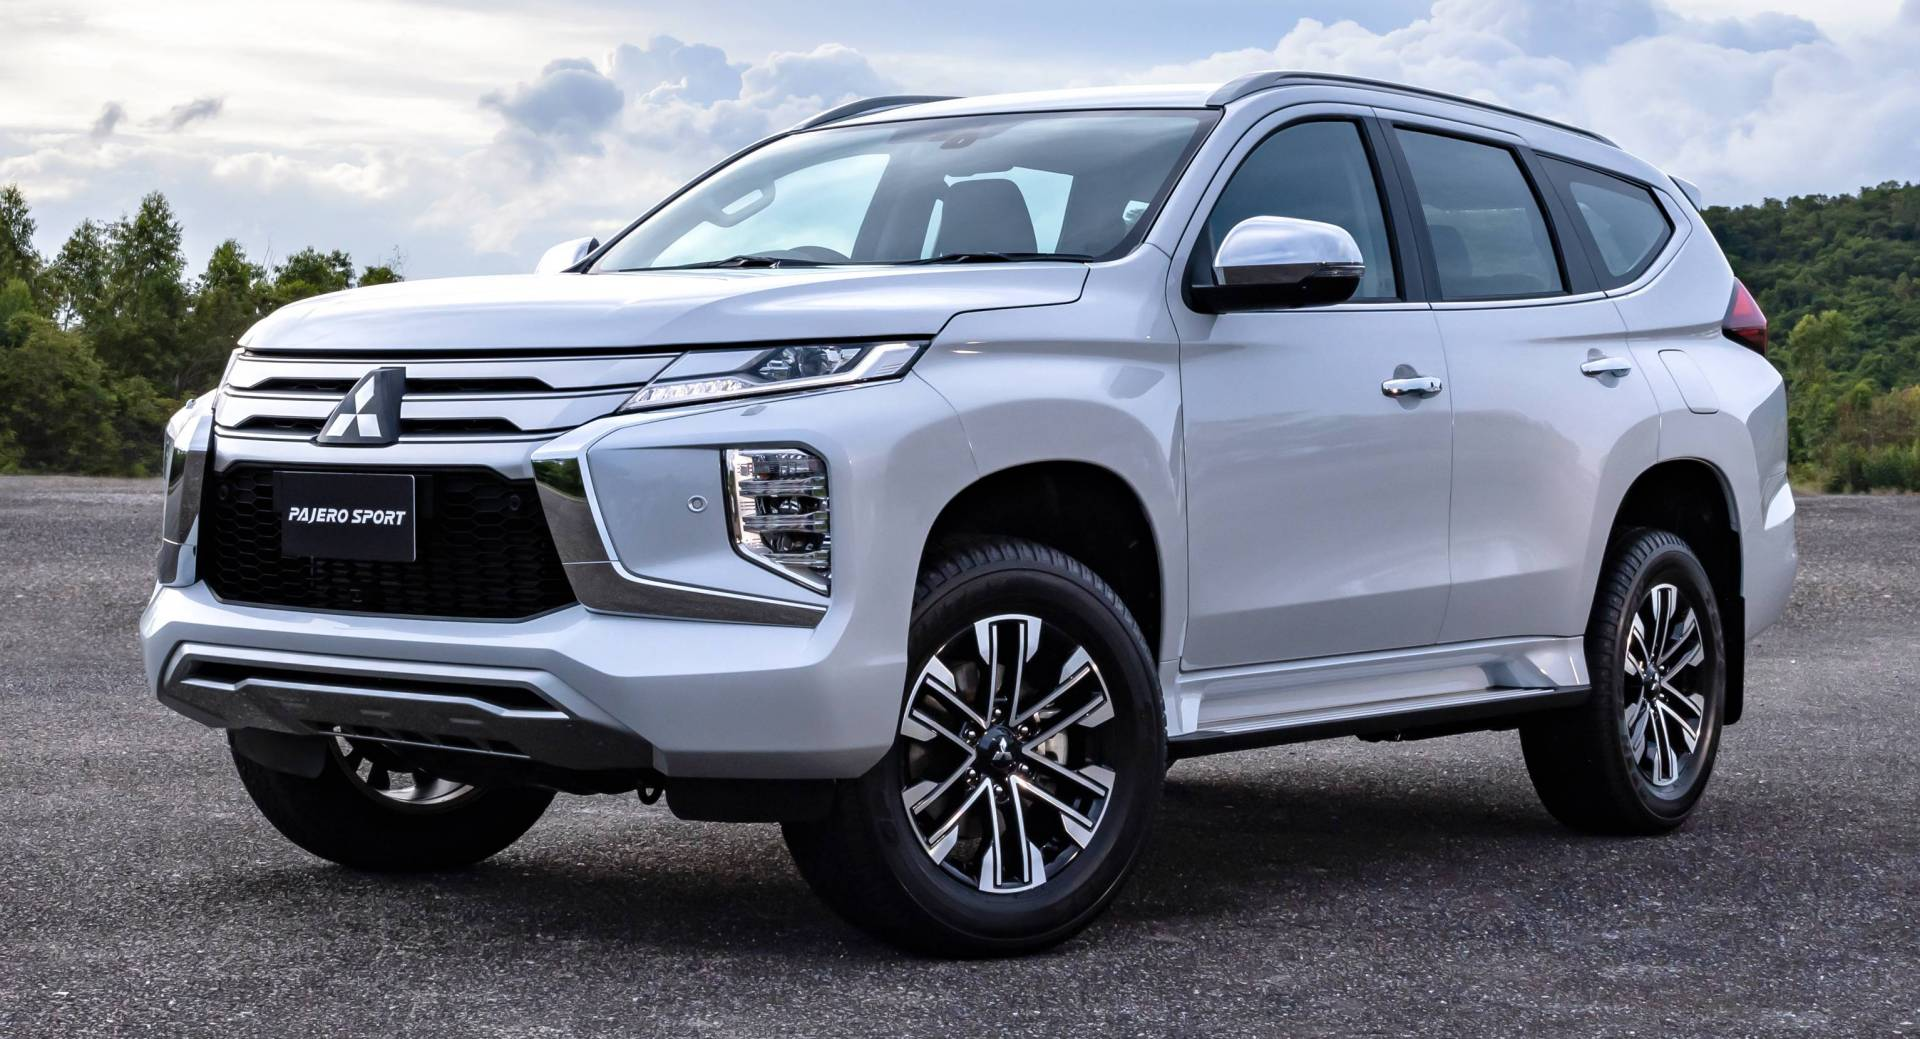 73 Great Mitsubishi Pajero Wagon 2020 Specs and Review for Mitsubishi Pajero Wagon 2020